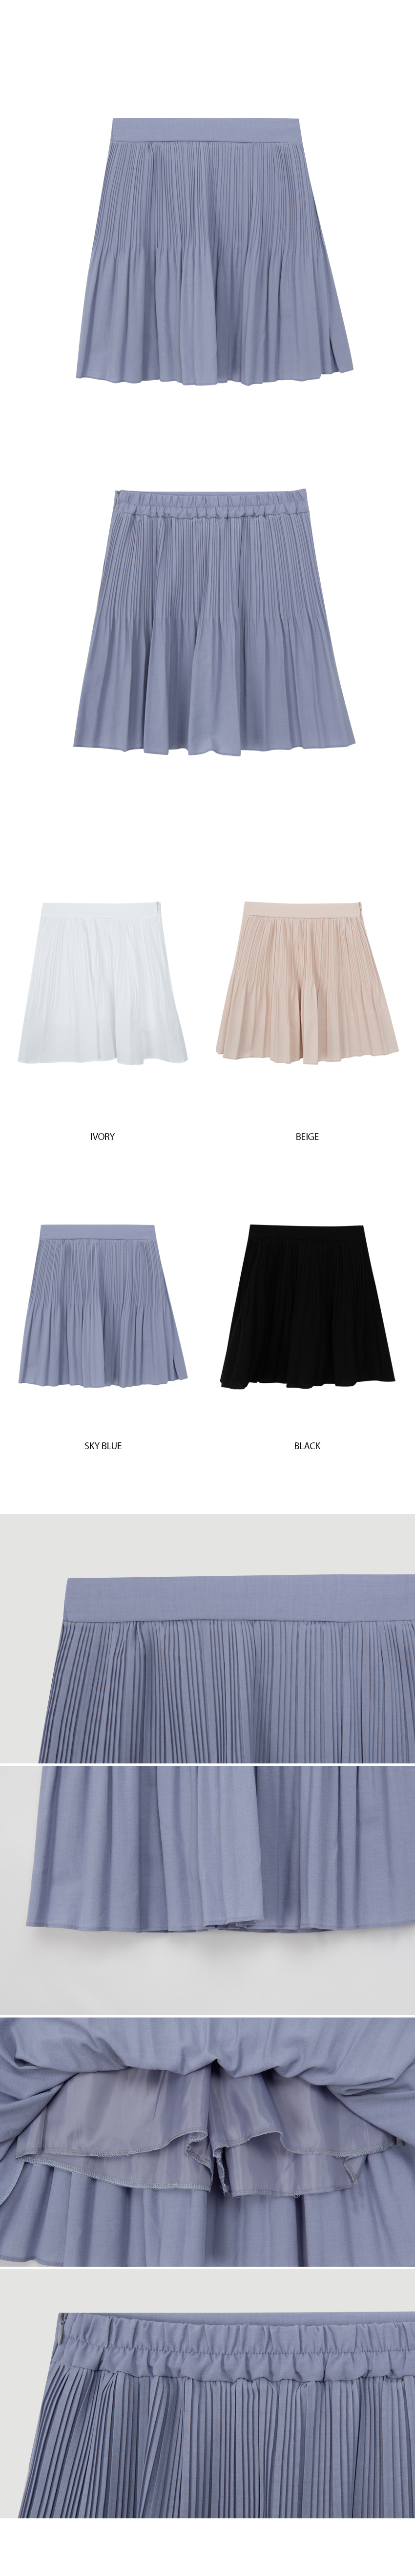 Blair Skirt Pants